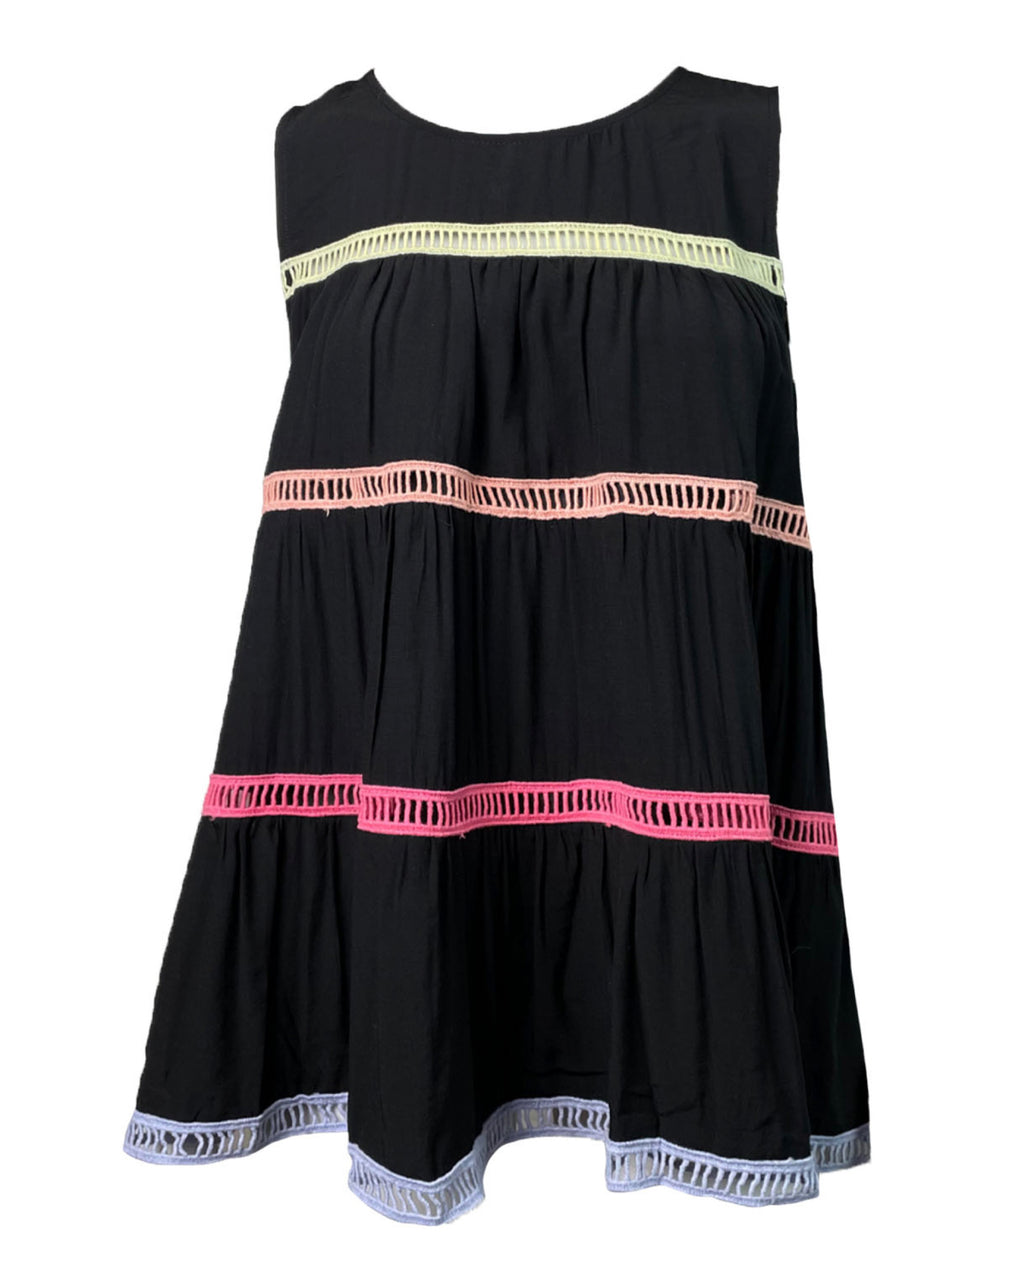 Black Babydoll Top with Colored Stripes